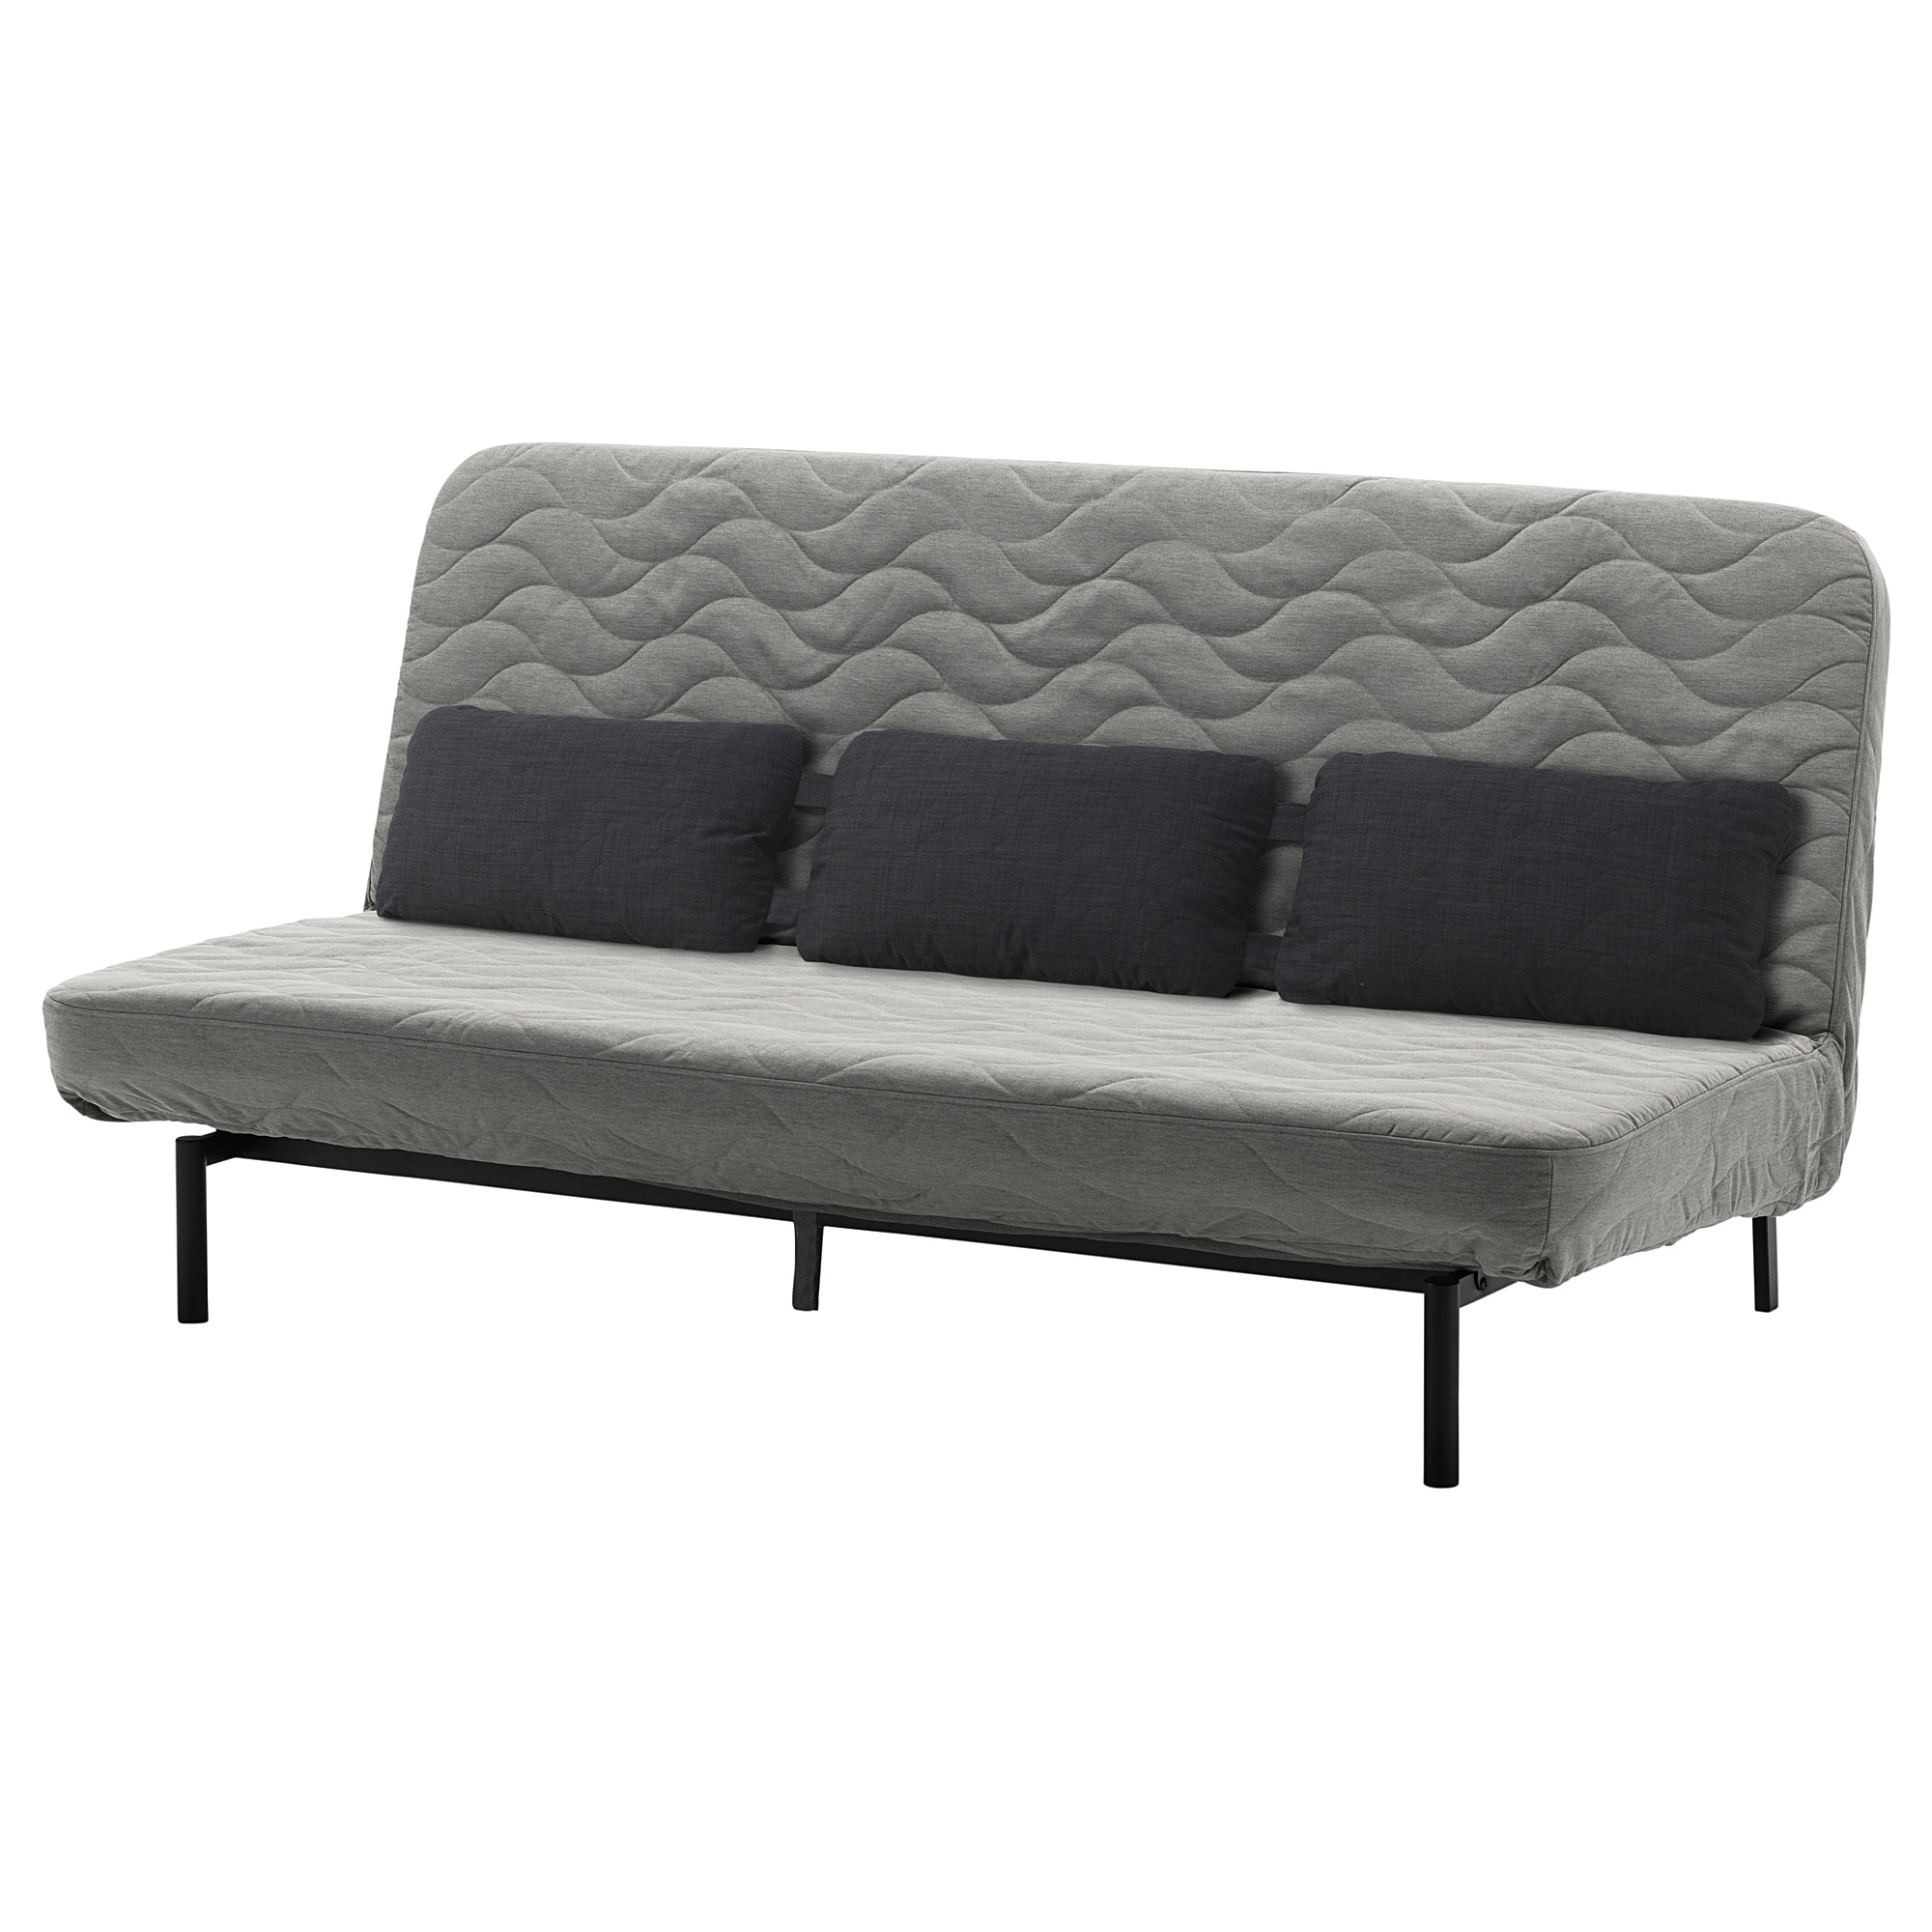 Nyhamn Sofa Bed With Triple Cushion With Foam Mattress Knisa Grey